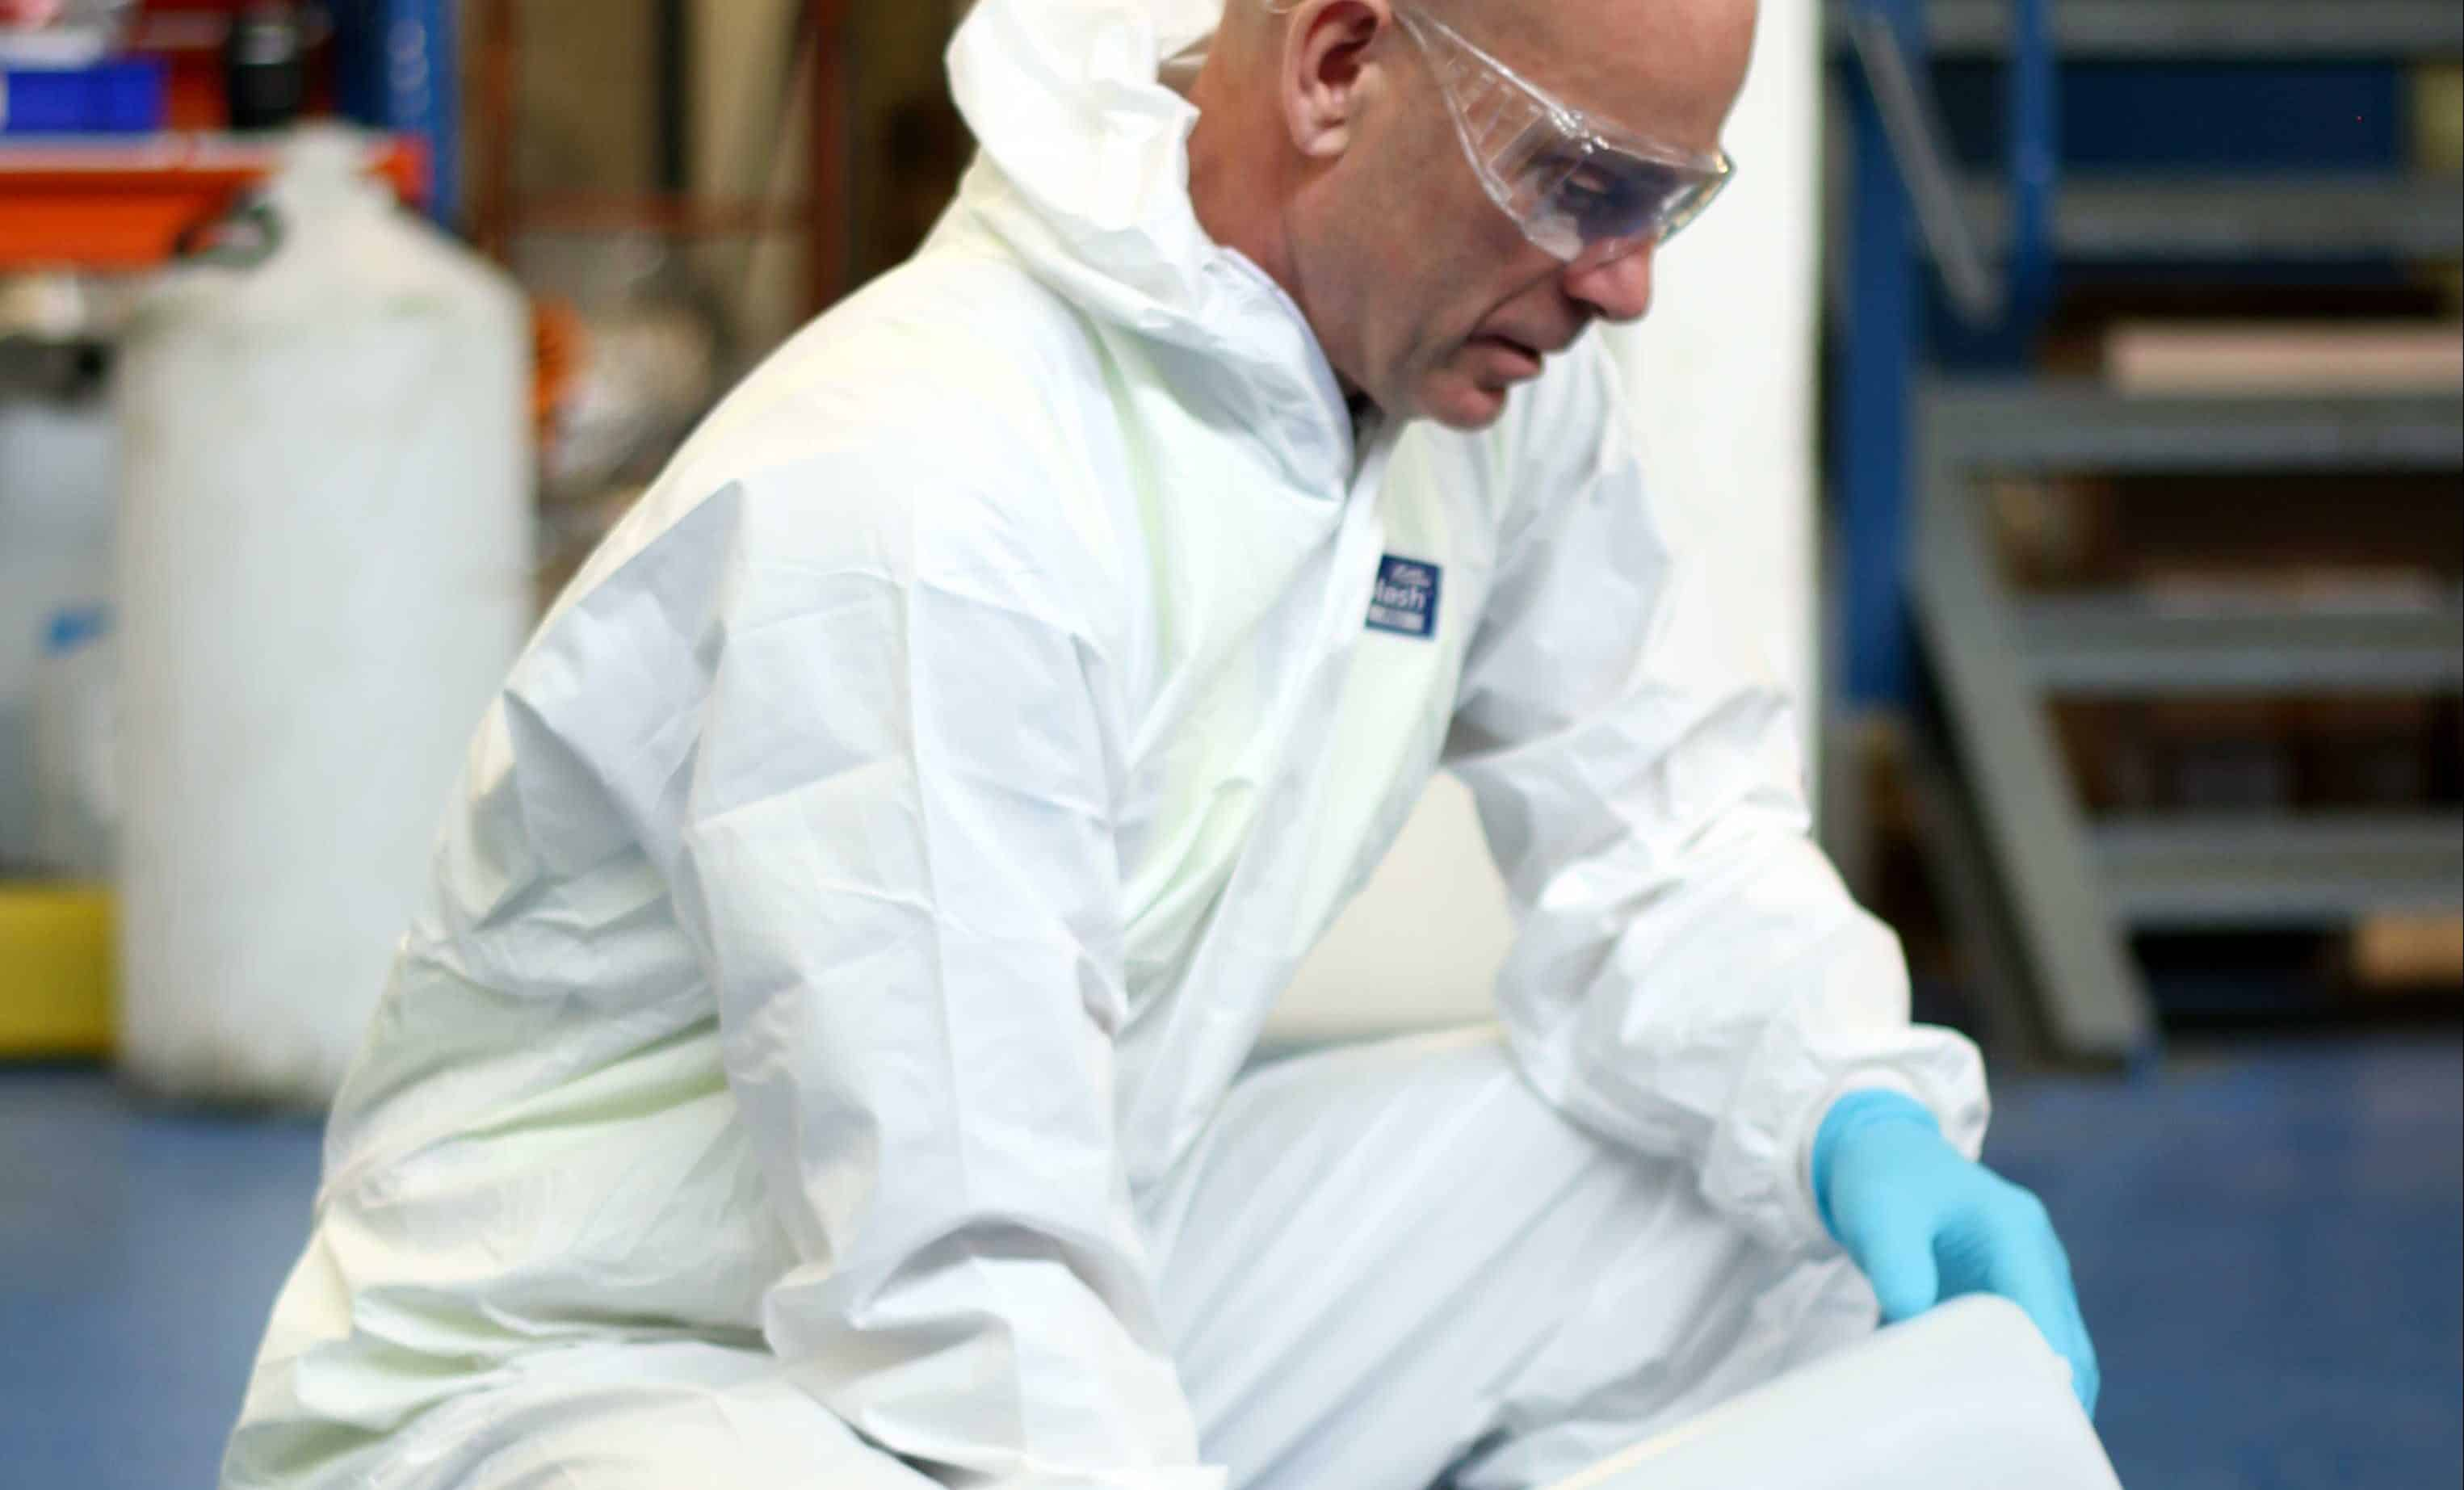 A cleanroom operator dressed in a white jumpsuit, wearing blue protective gloves and clear goggles